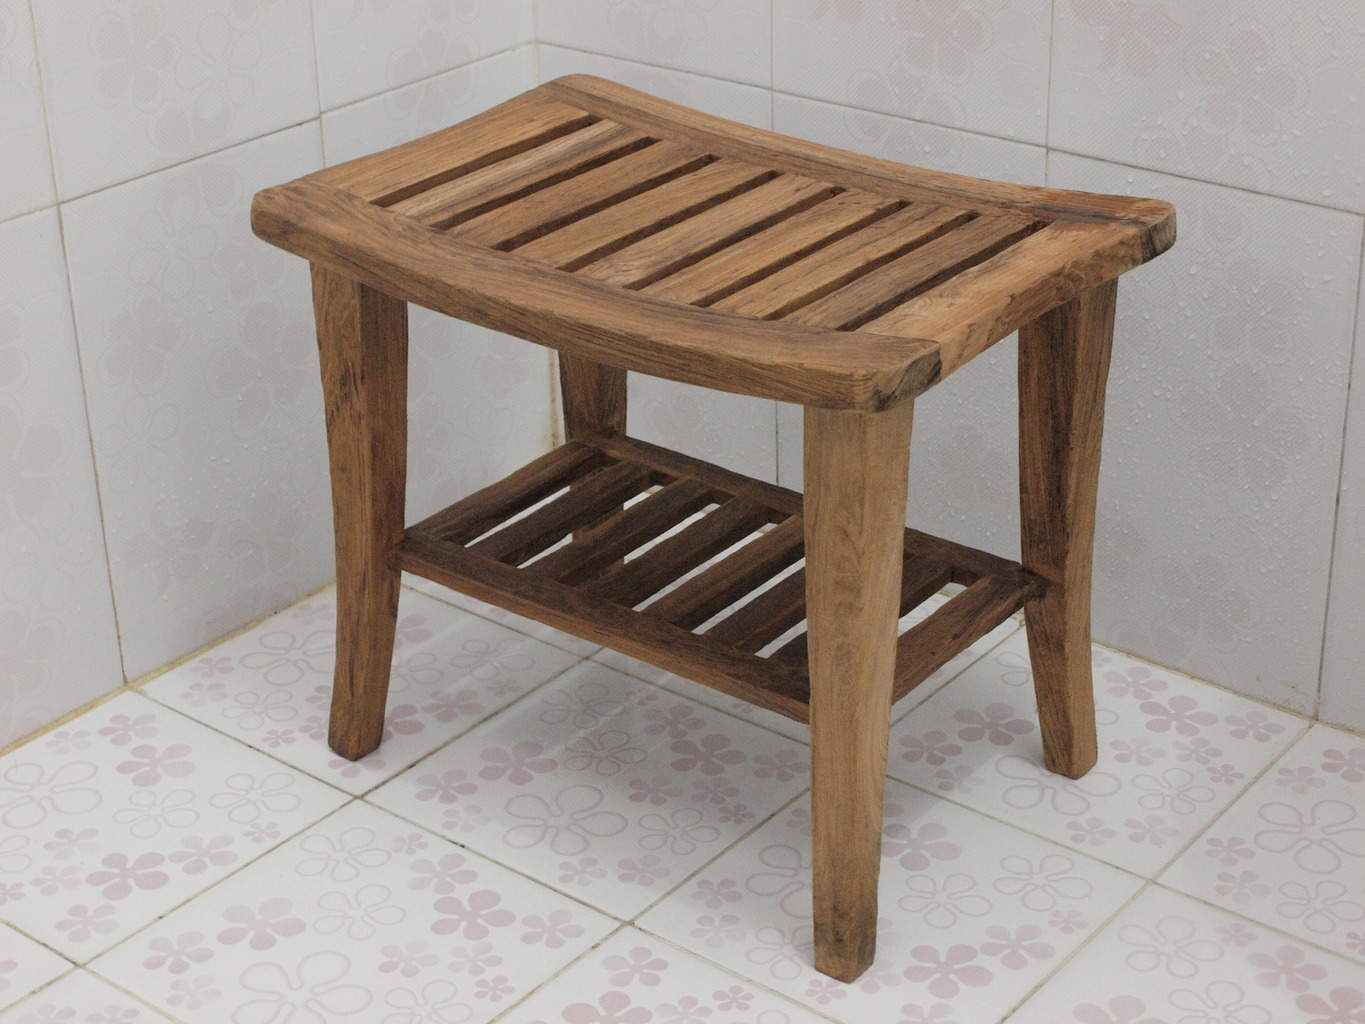 Teak Shower Bench Bagoes Teak Furniture Indonesia Best